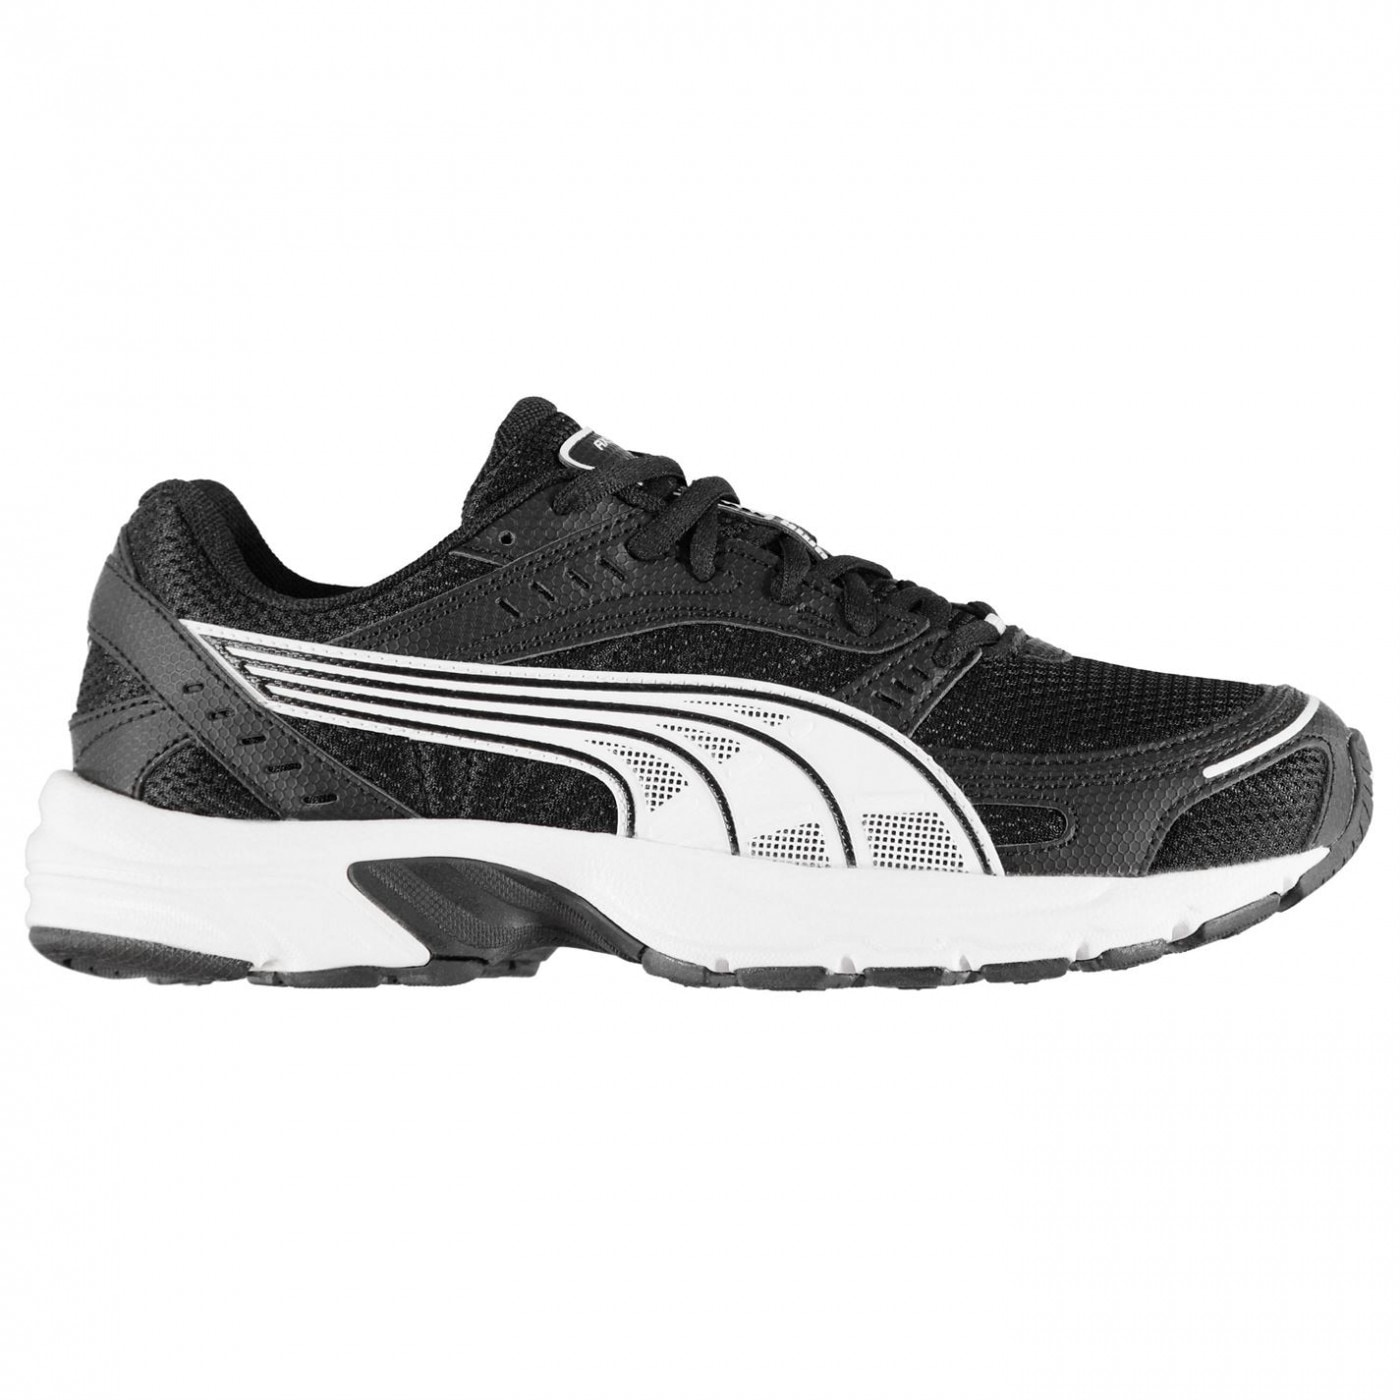 Men's Trainers Puma Axis